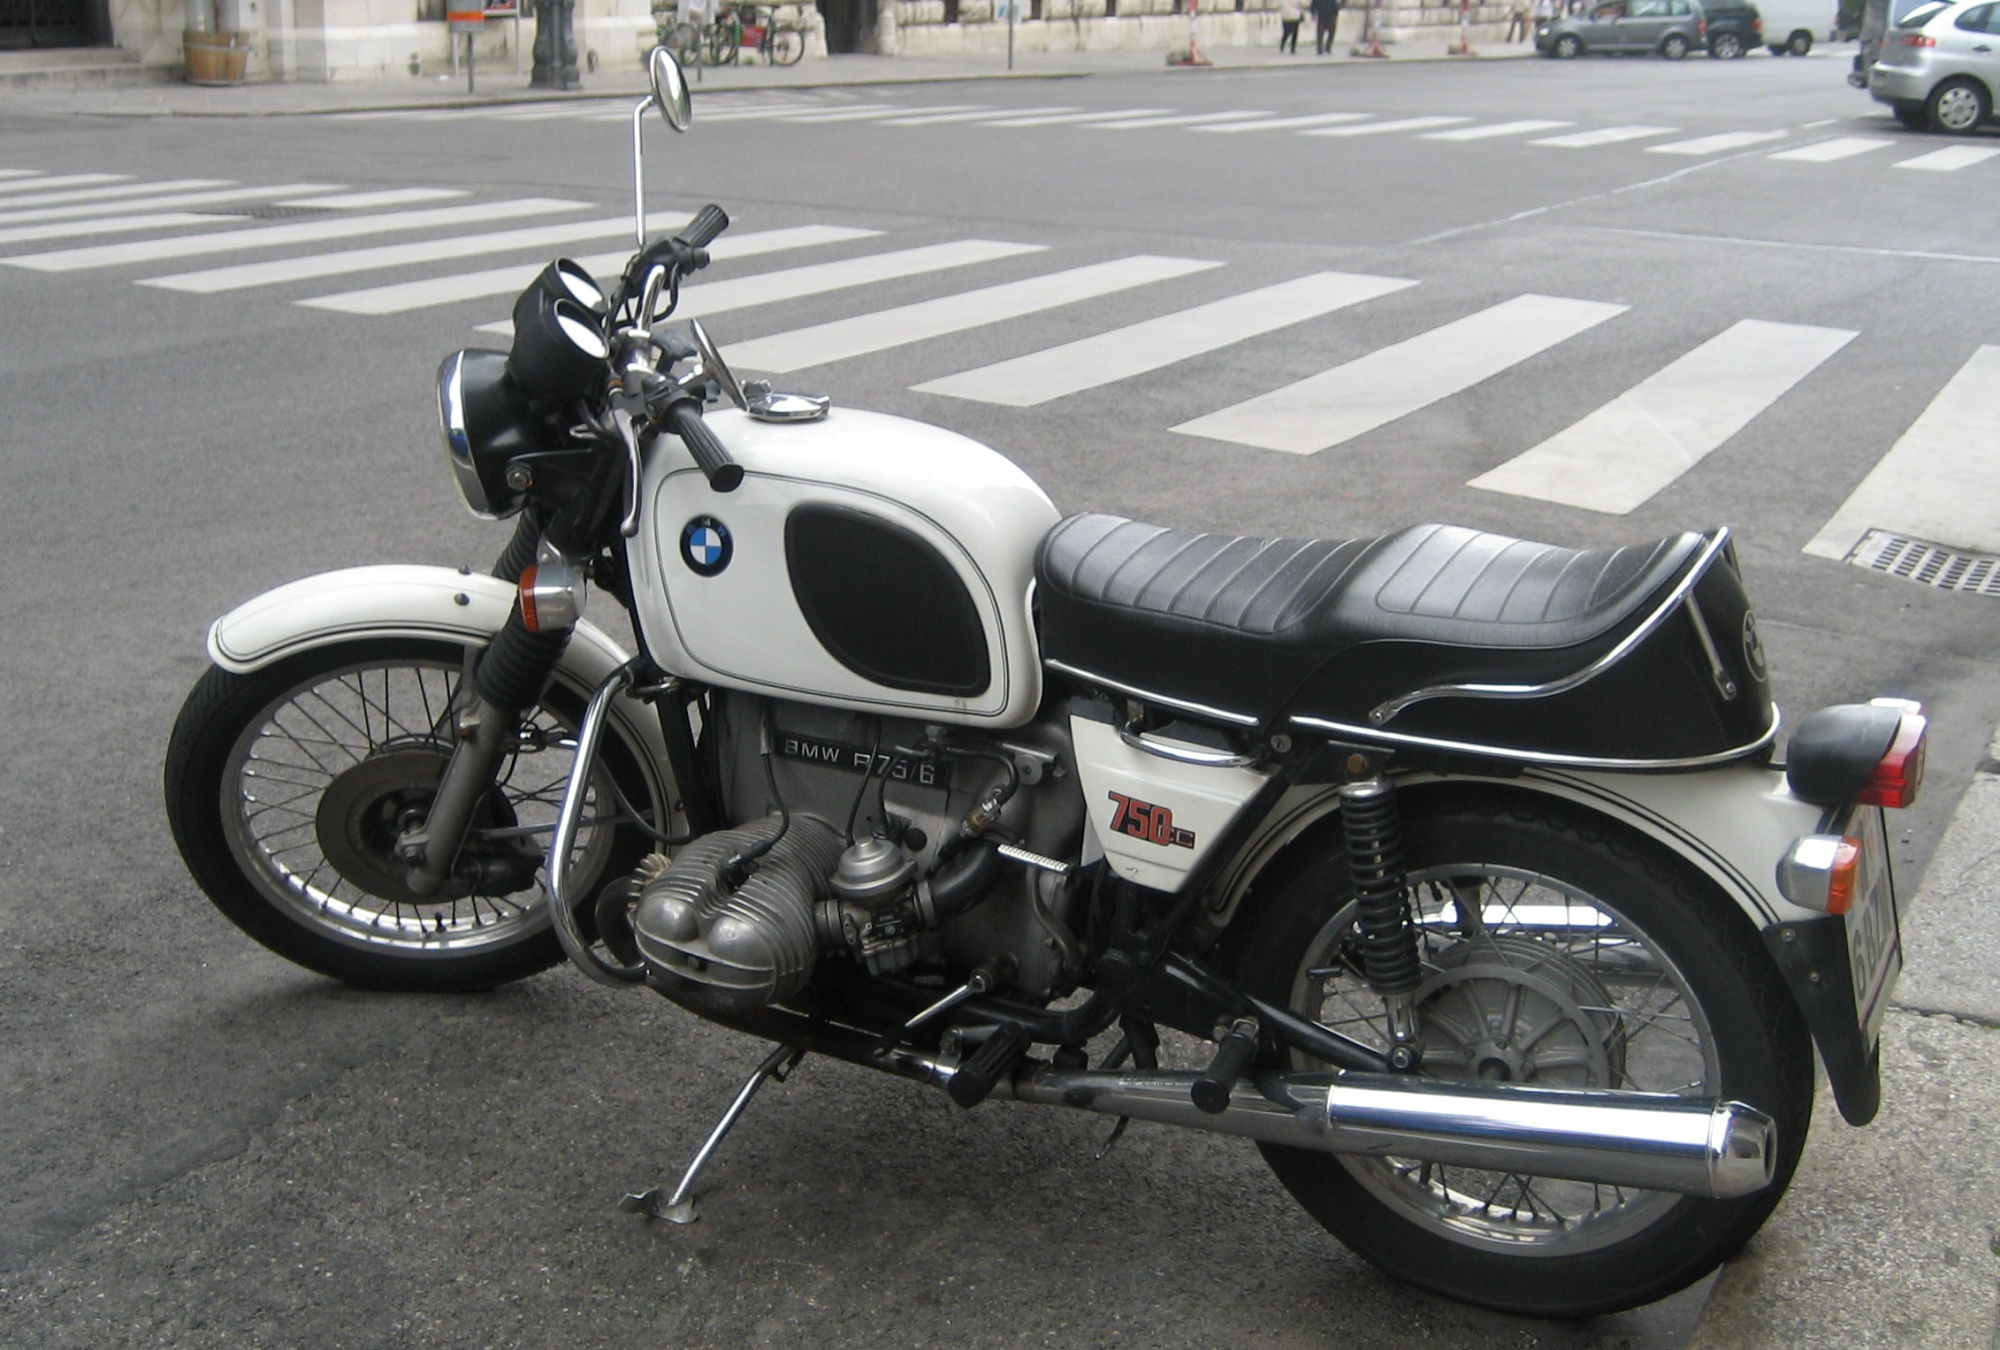 Cafe Racer Motorcycle For Sale Los Angeles